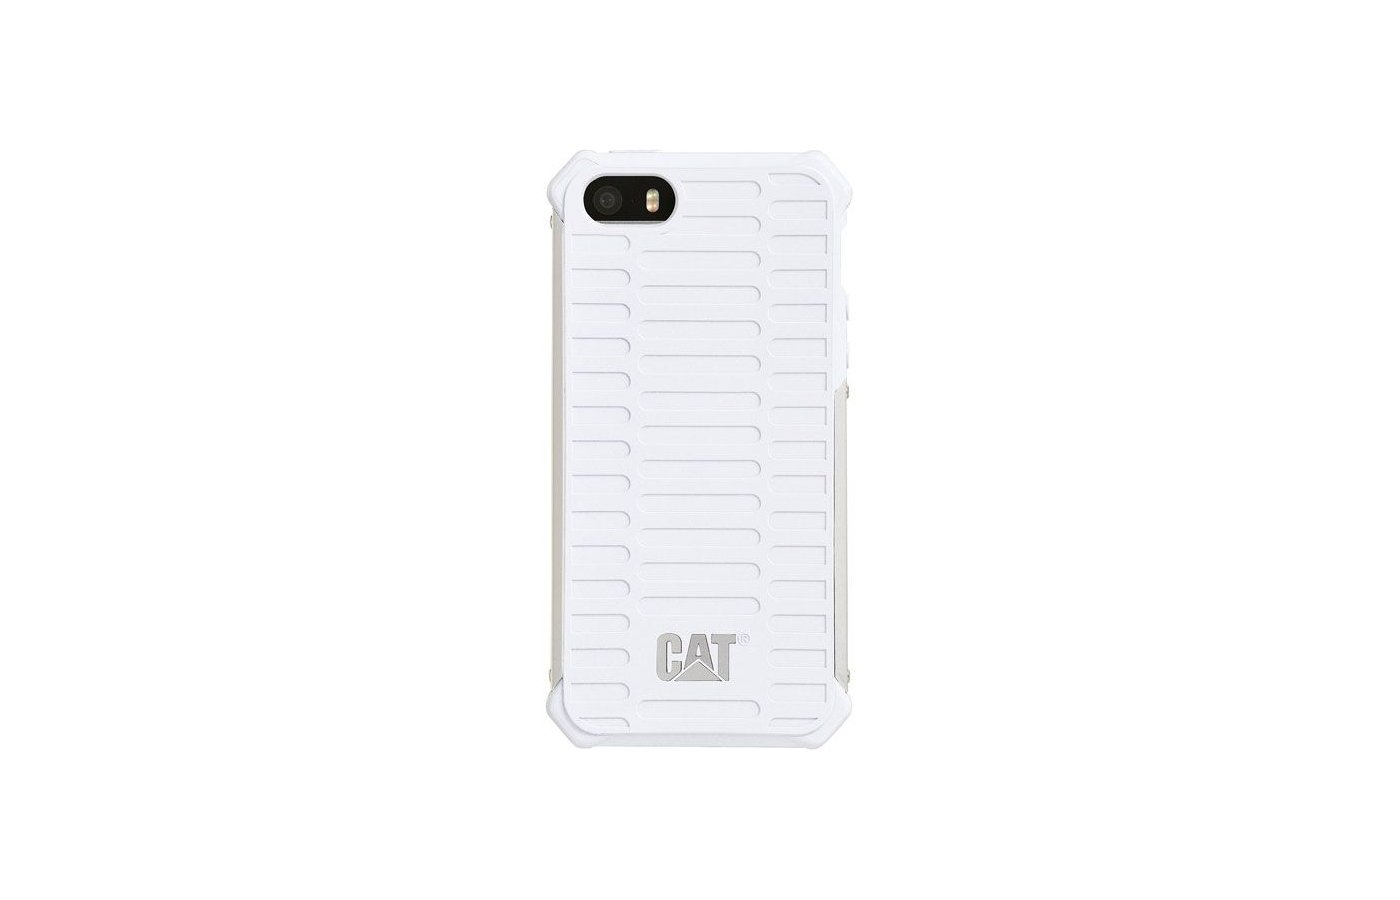 Чехол Caterpillar для iPhone 5/5S/SE Urban white (CUCA-WHSI-I5S)